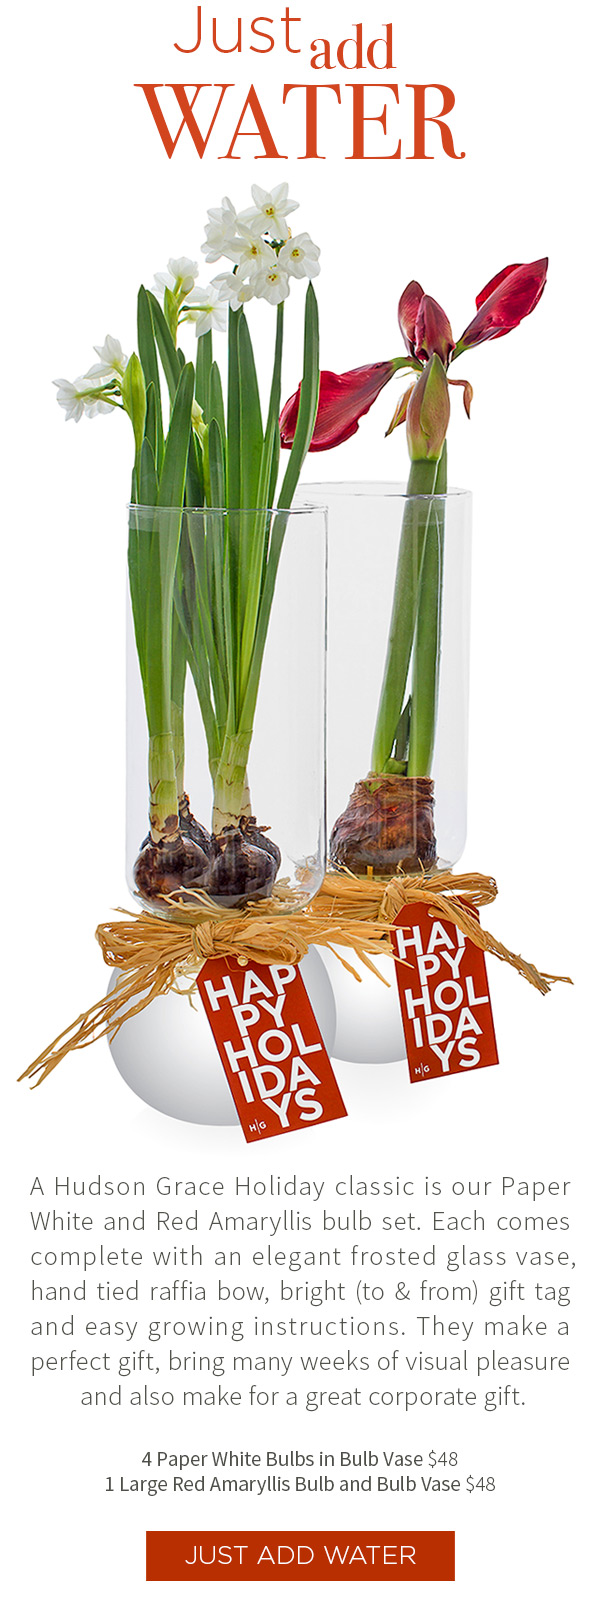 Just Add Water. A Hudson Grace Holiday classic is our Paper White and Red Amaryllis bulb set. Each comes complete with an elegant frosted glass vase, hand tied raffia bow, bright (to & from) gift tag and easy growing instructions. They make a perfect gift, bring many weeks of visual pleasure and also make for a great corporate gift. 4 Paper White Bulbs in Bulb Vase $48 .?1 Large Red Amaryllis Bulb and Bulb Vase $48